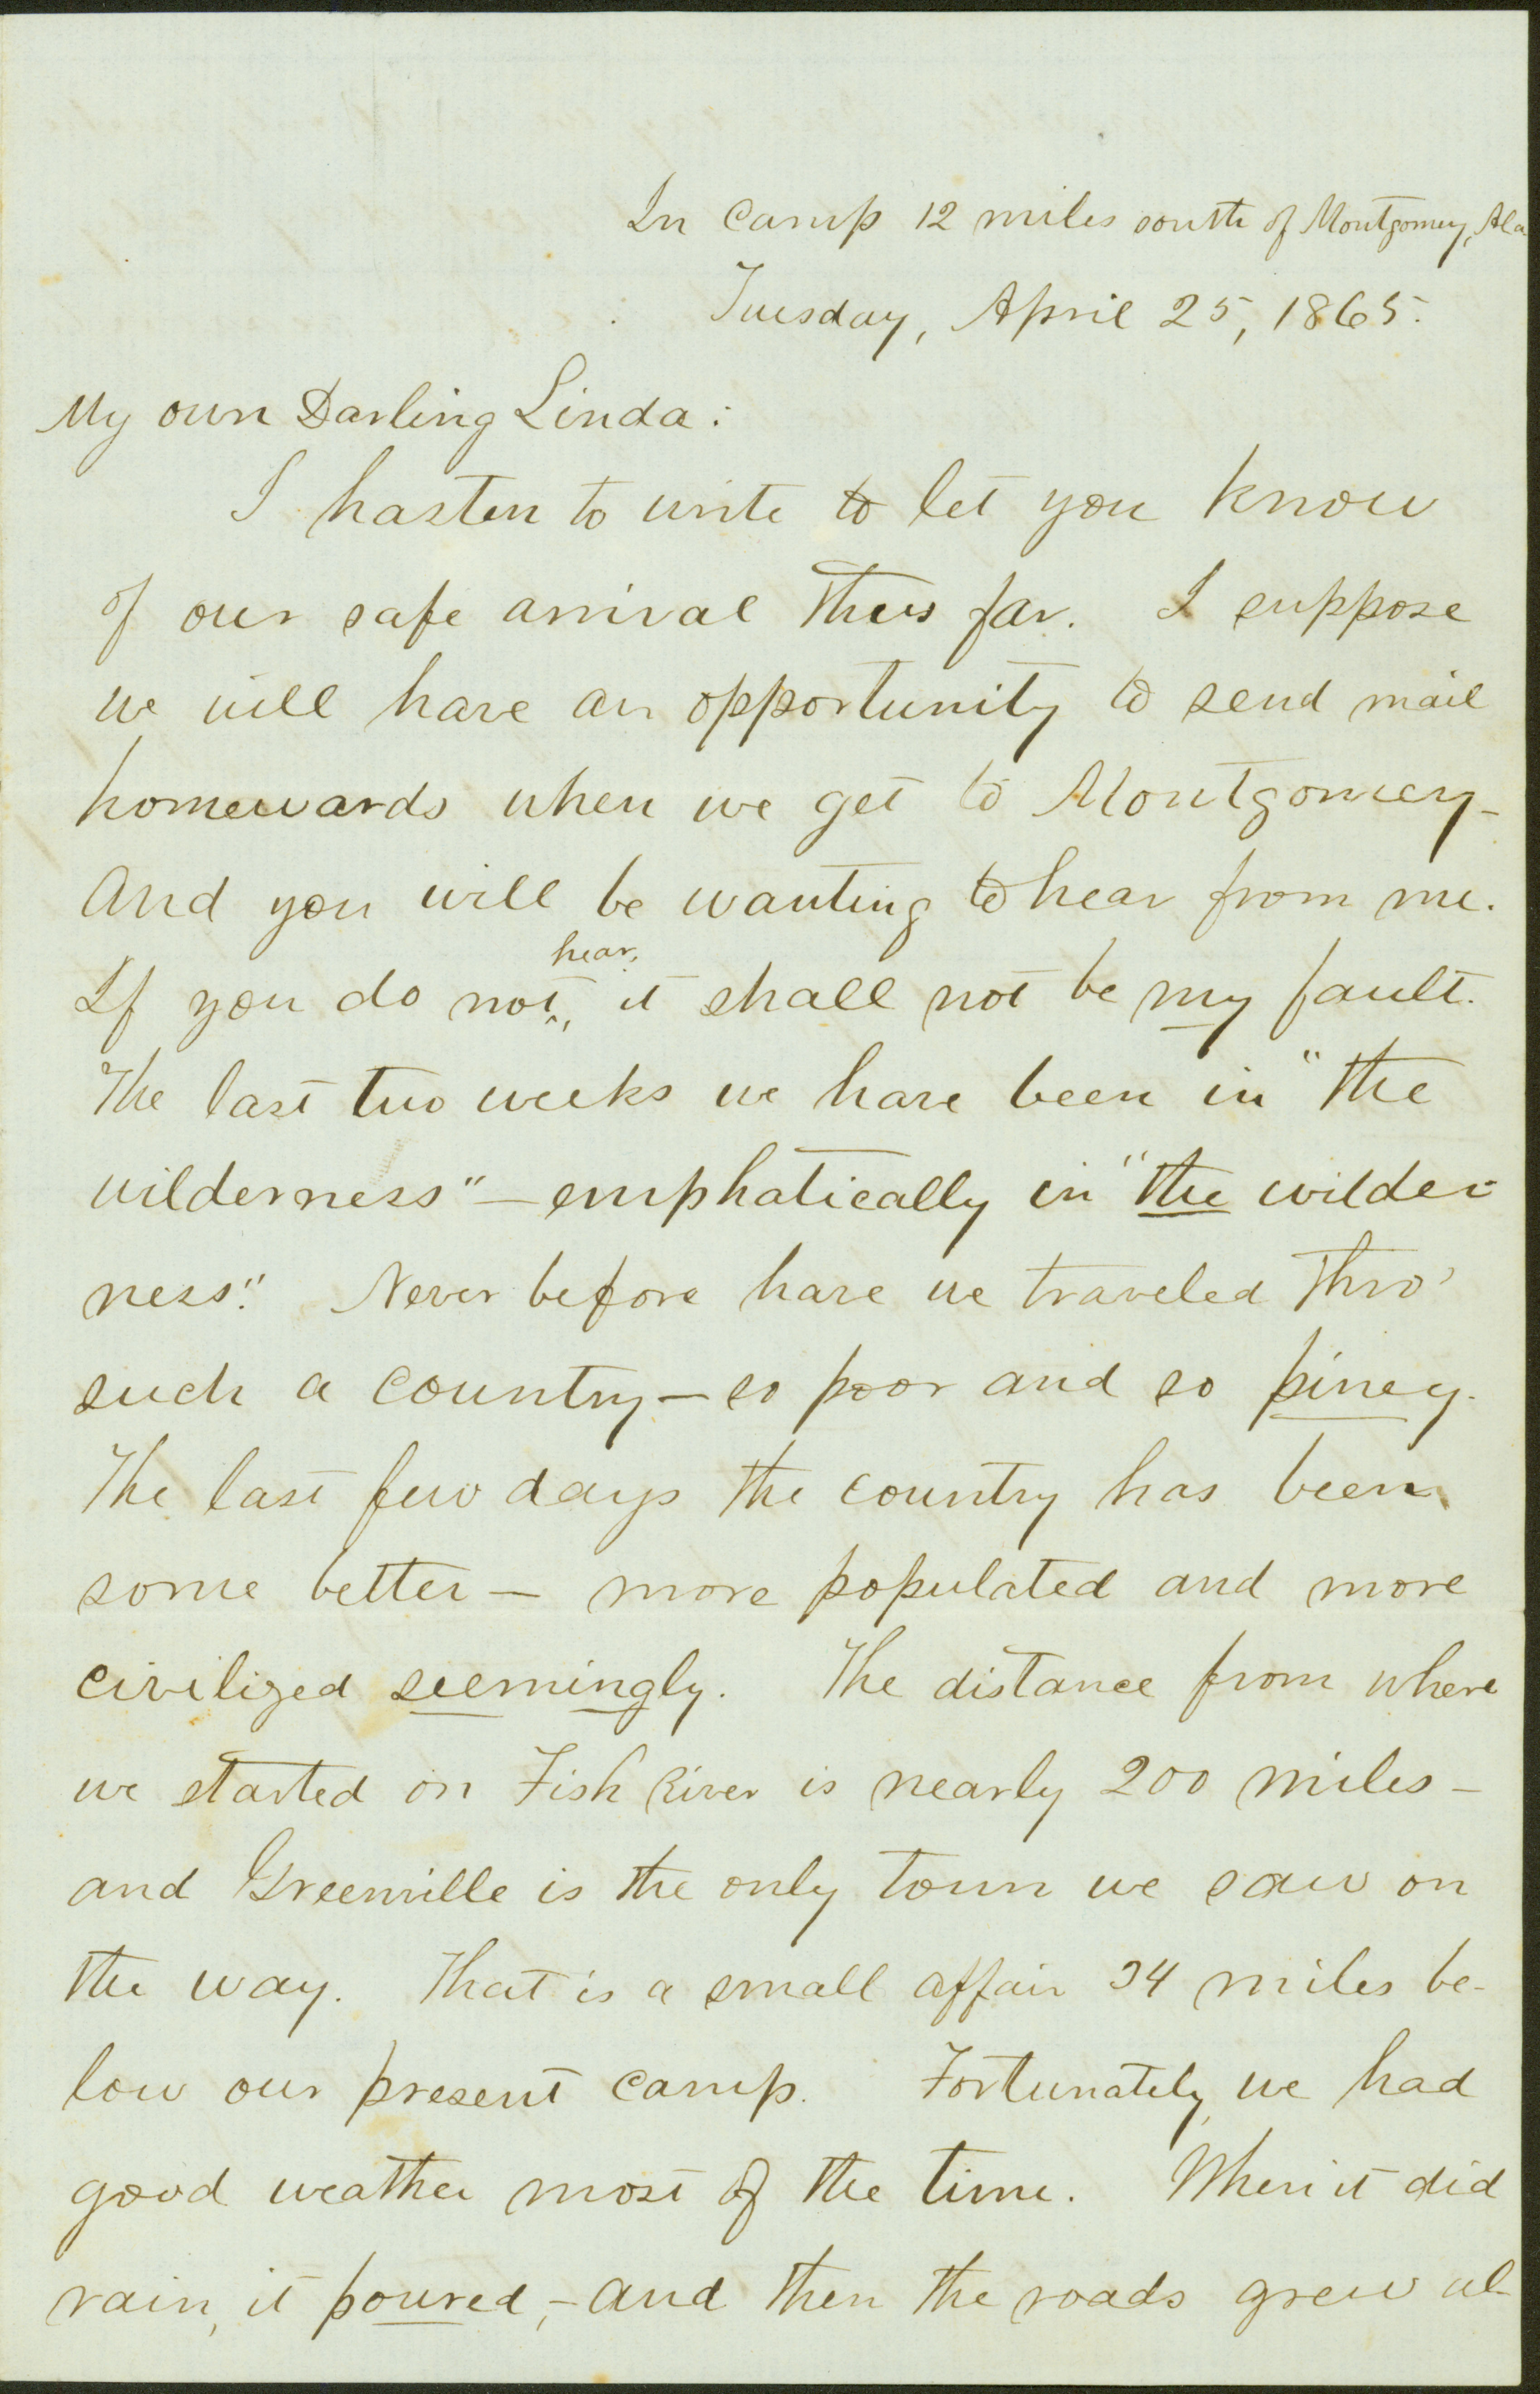 Letter of M. J. Miller, In camp 12 miles south of Montgomery, Ala., to Linda, April 25 and 29, 1865